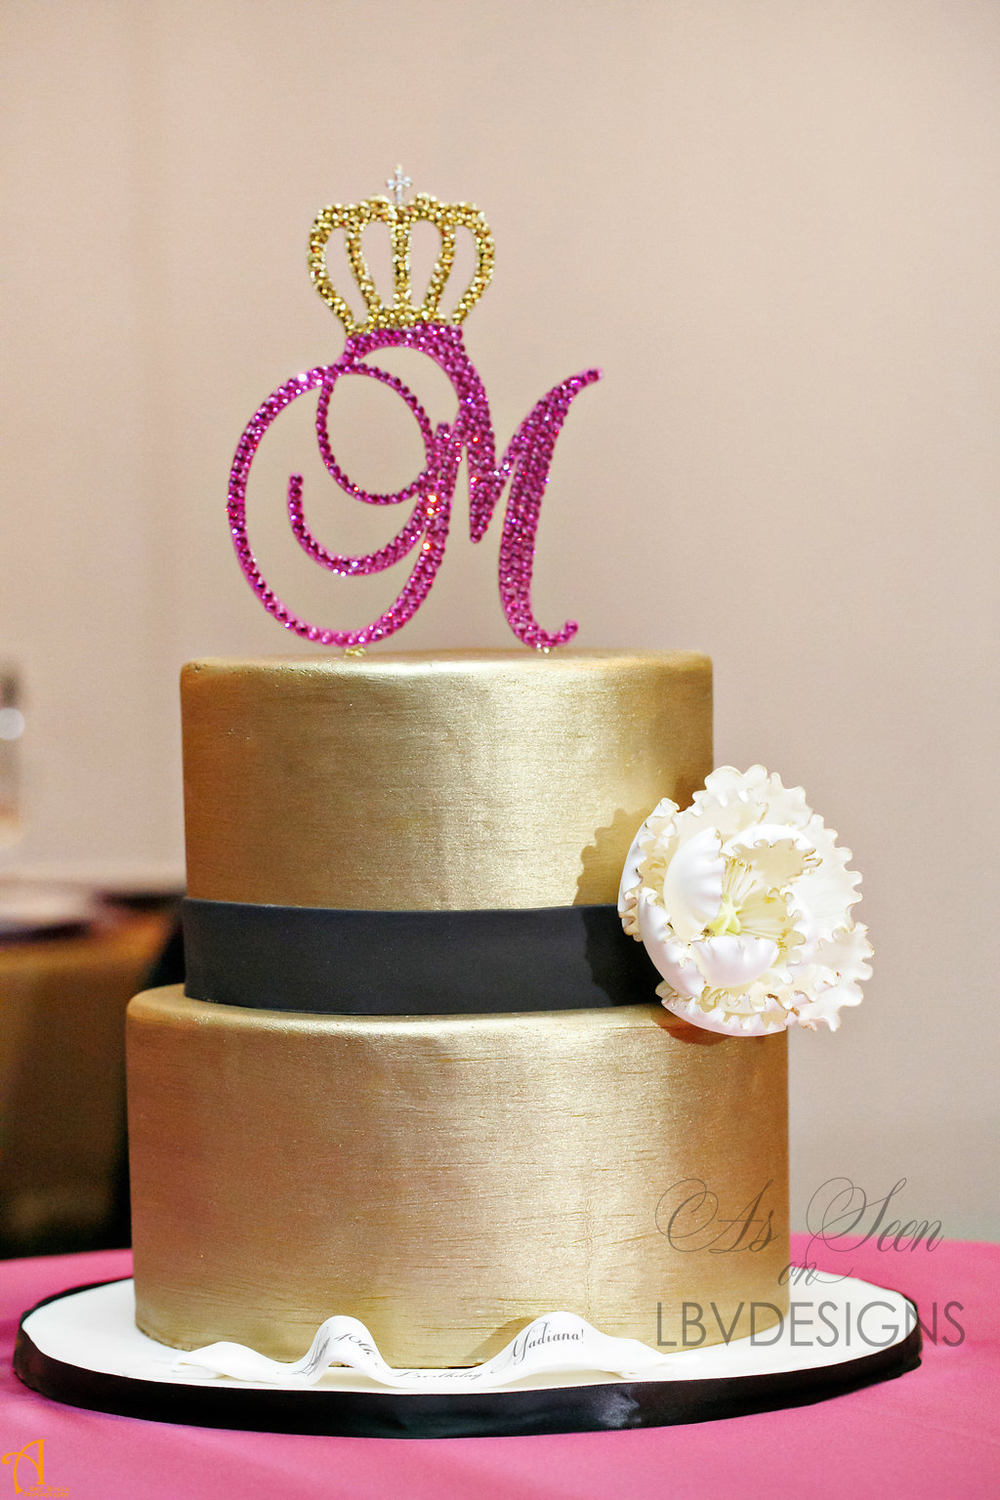 LBVDesigns_cake_topper_royal_swarovski_monogram_bcakeny.jpg